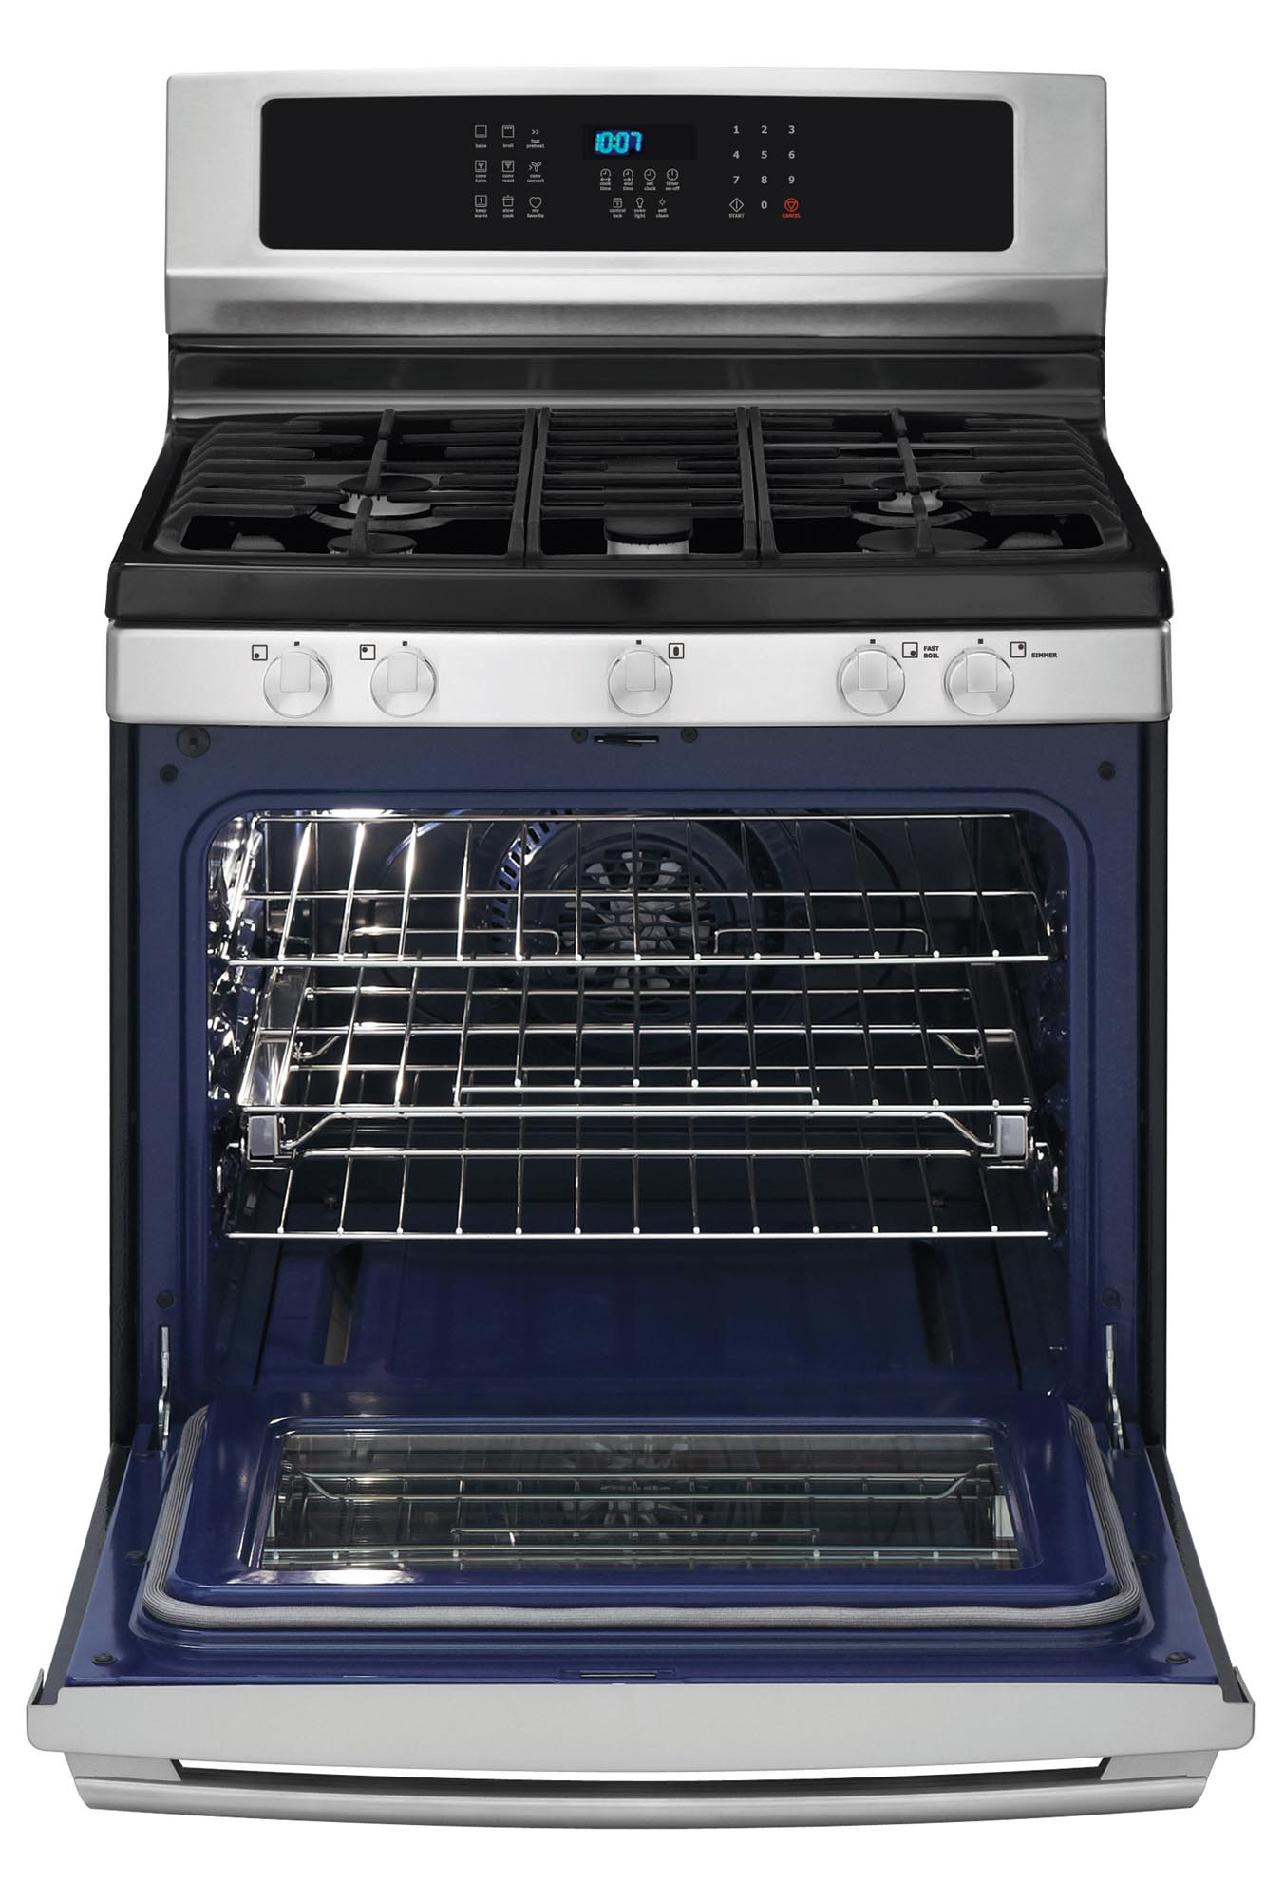 Electrolux EI30GF35JS 5.0 cu. ft. Freestanding Gas Range w/ IQ-Touch™ Controls - Stainless Steel